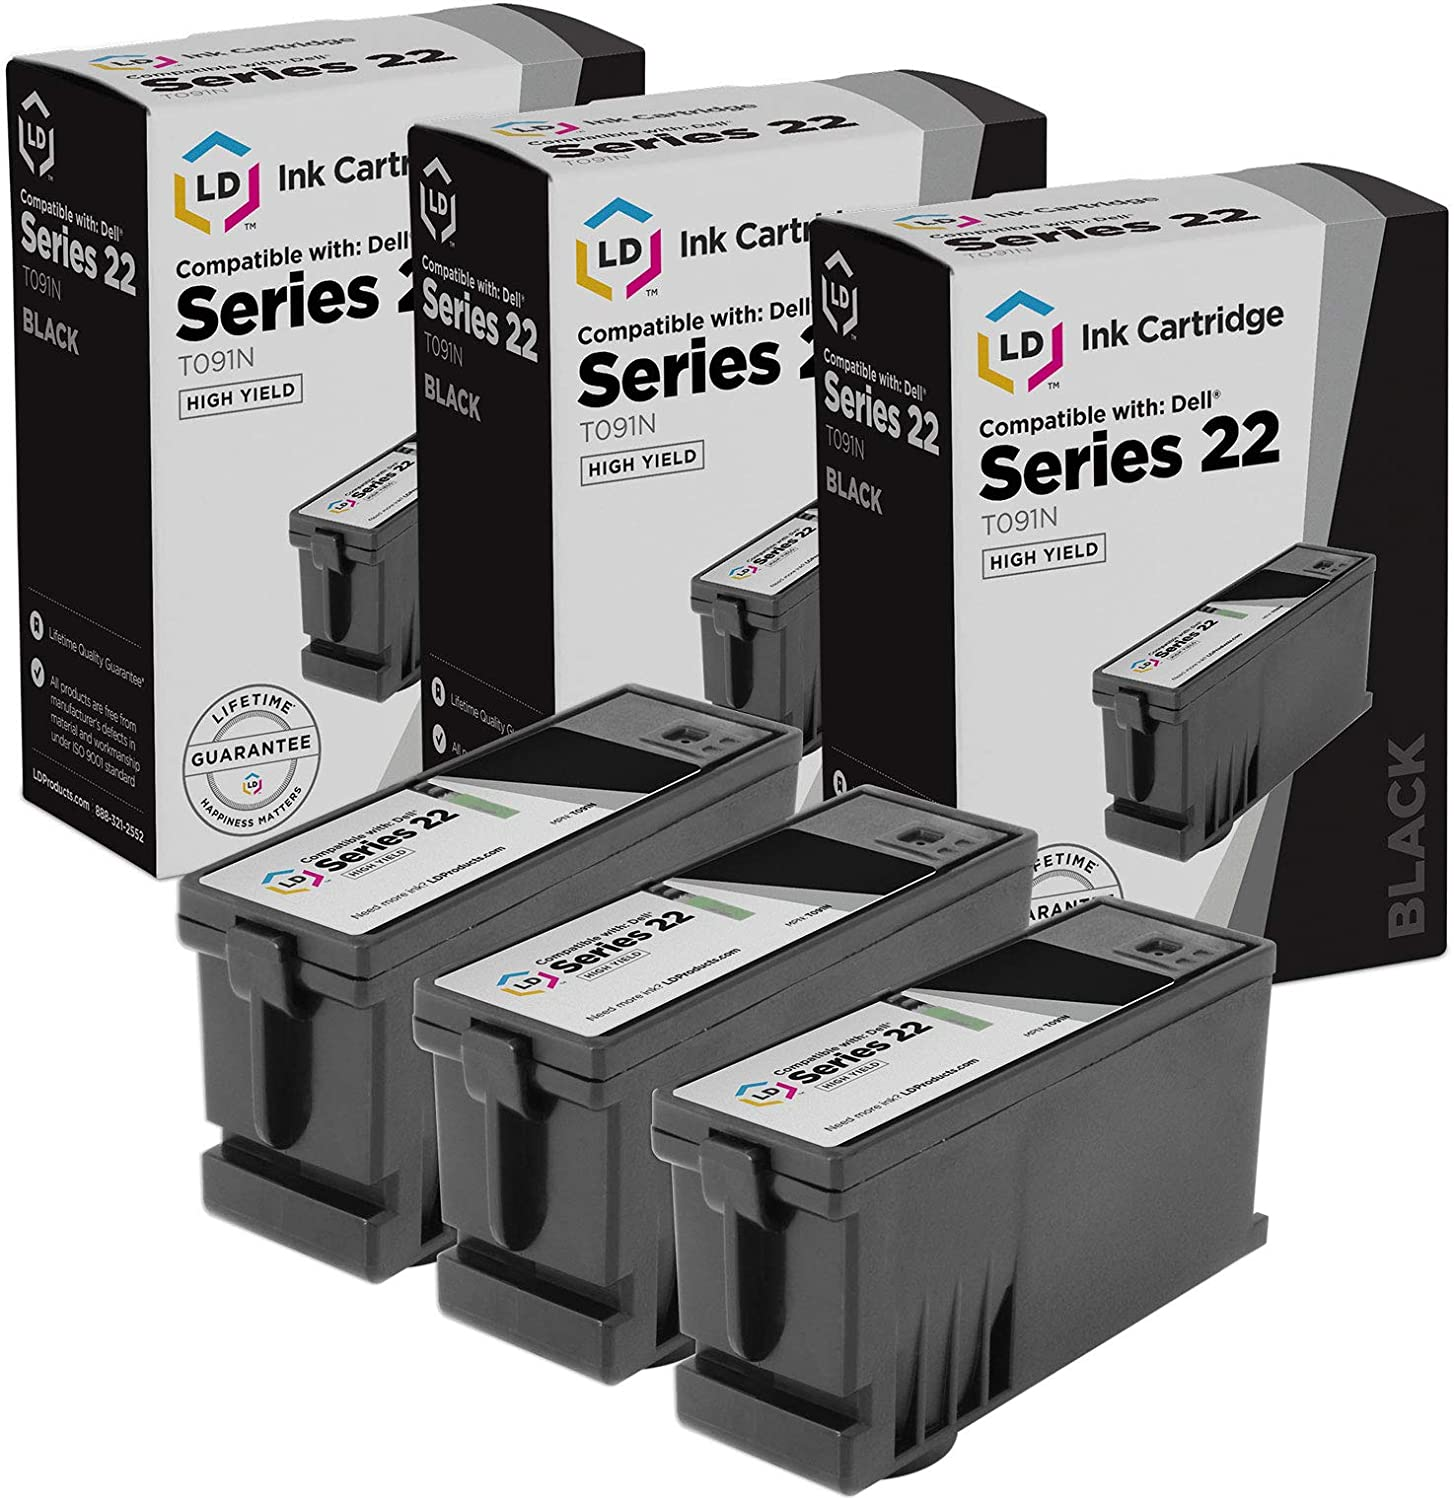 LD Compatible Ink Cartridge Replacement for Dell T091N Series 22 High Yield (Black, 3-Pack)